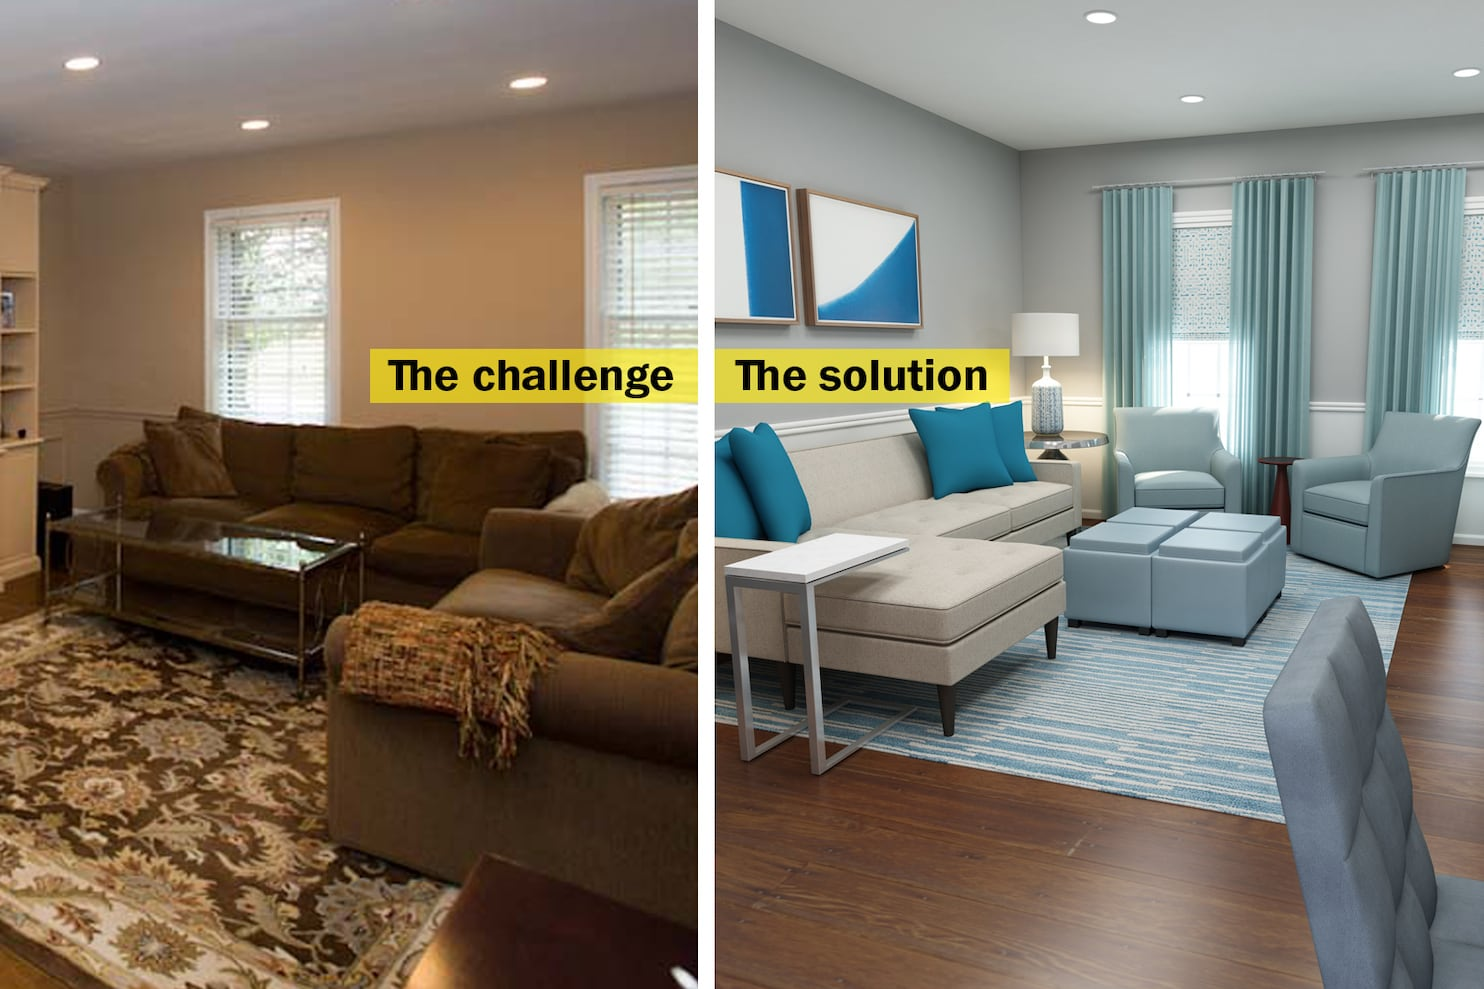 Comfortable Den Furniture To Conquer A Crowded Family Room Start By Getting Rid Of